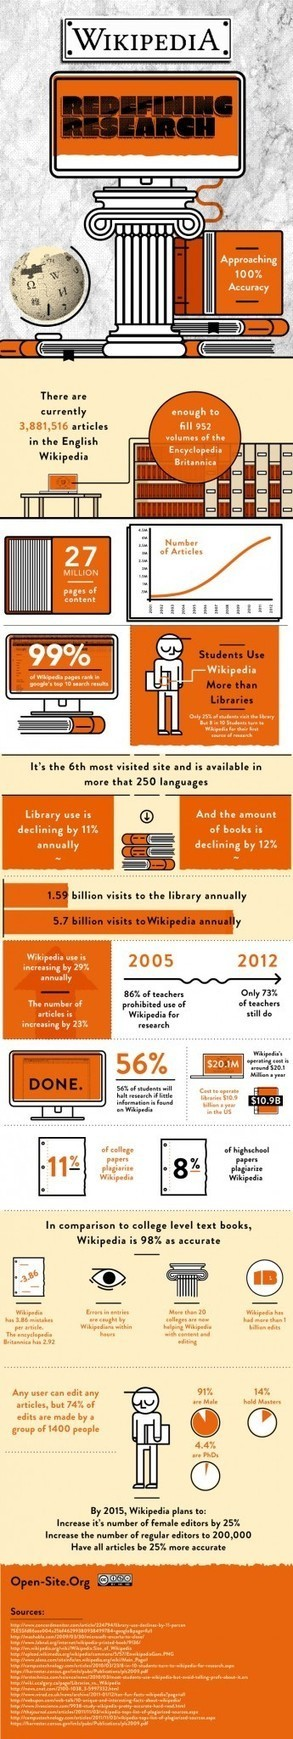 How Wikipedia is Redefining Research Infographic | School libraries for information literacy and learning! | Scoop.it